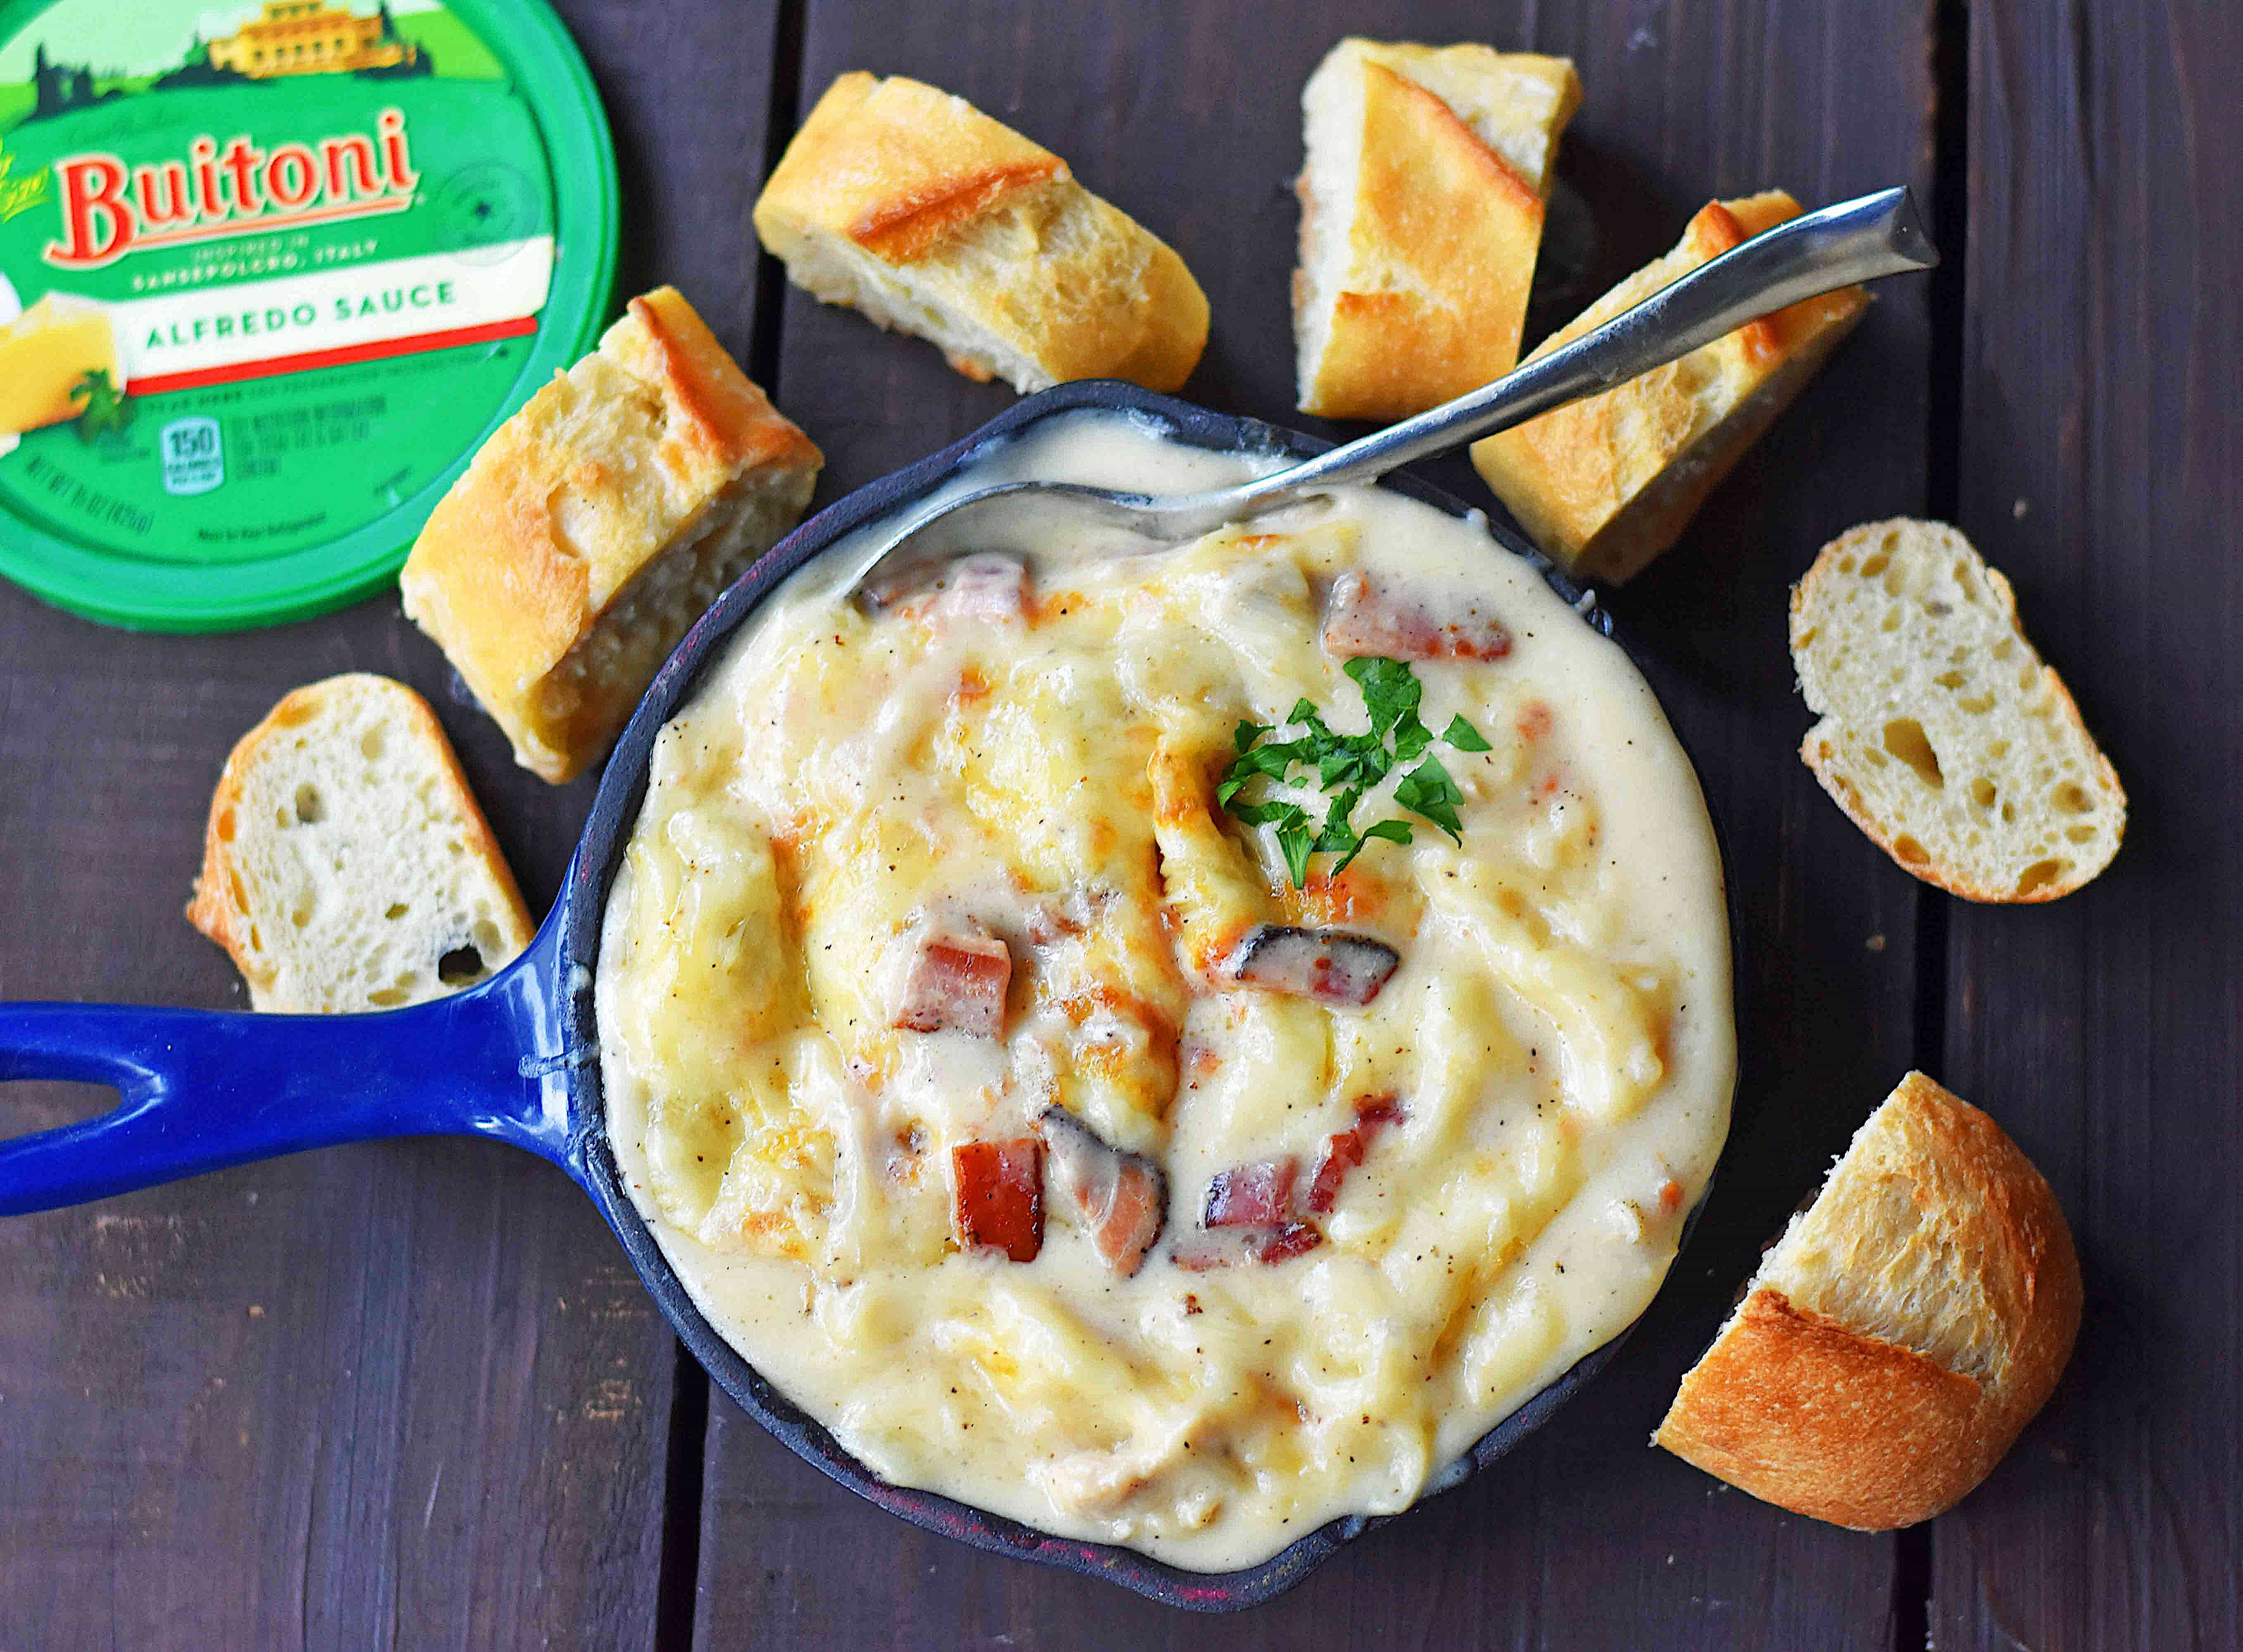 Chicken Bacon Alfredo Dip with Sautéed Chicken, Buitoni Alfredo Sauce, Crispy Bacon and baked with Mozzarella and Buitoni Parmesan Cheese. Served with sliced French Bread. A savory and cheese-filled baked appetizer that will please the masses!